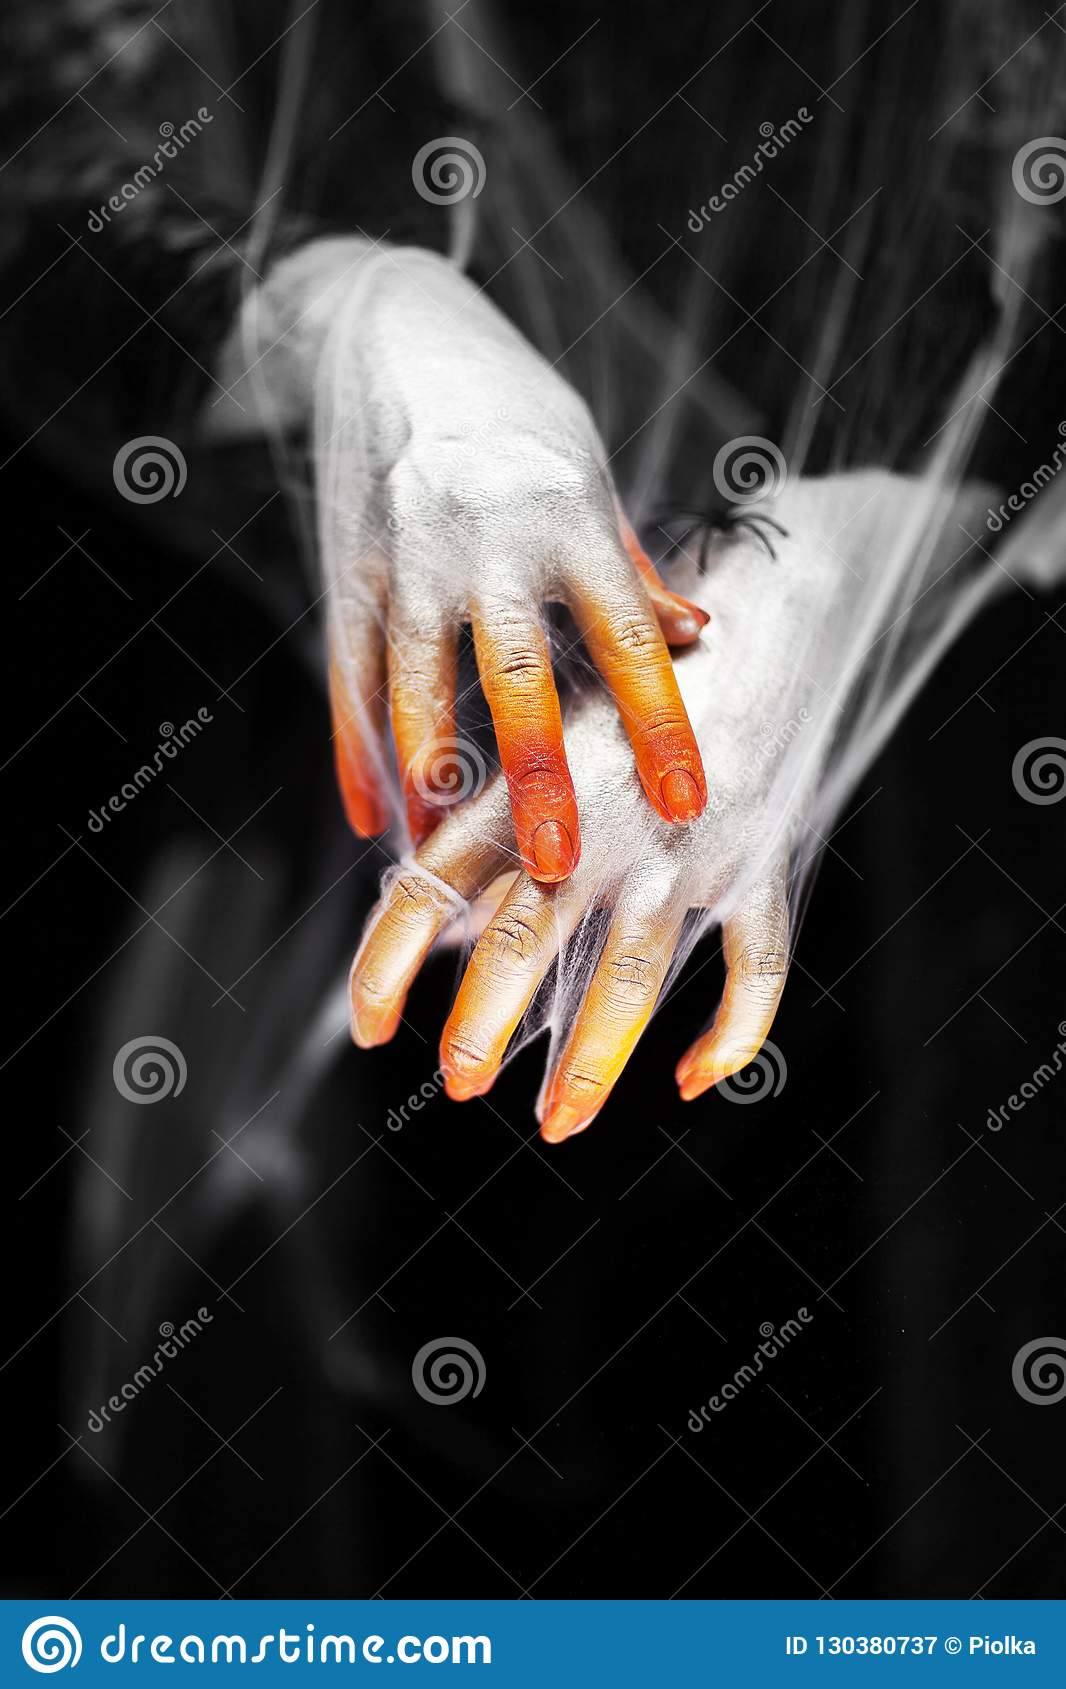 Creepy halloween hands with red, orange and silver covered in a spider web with spiders